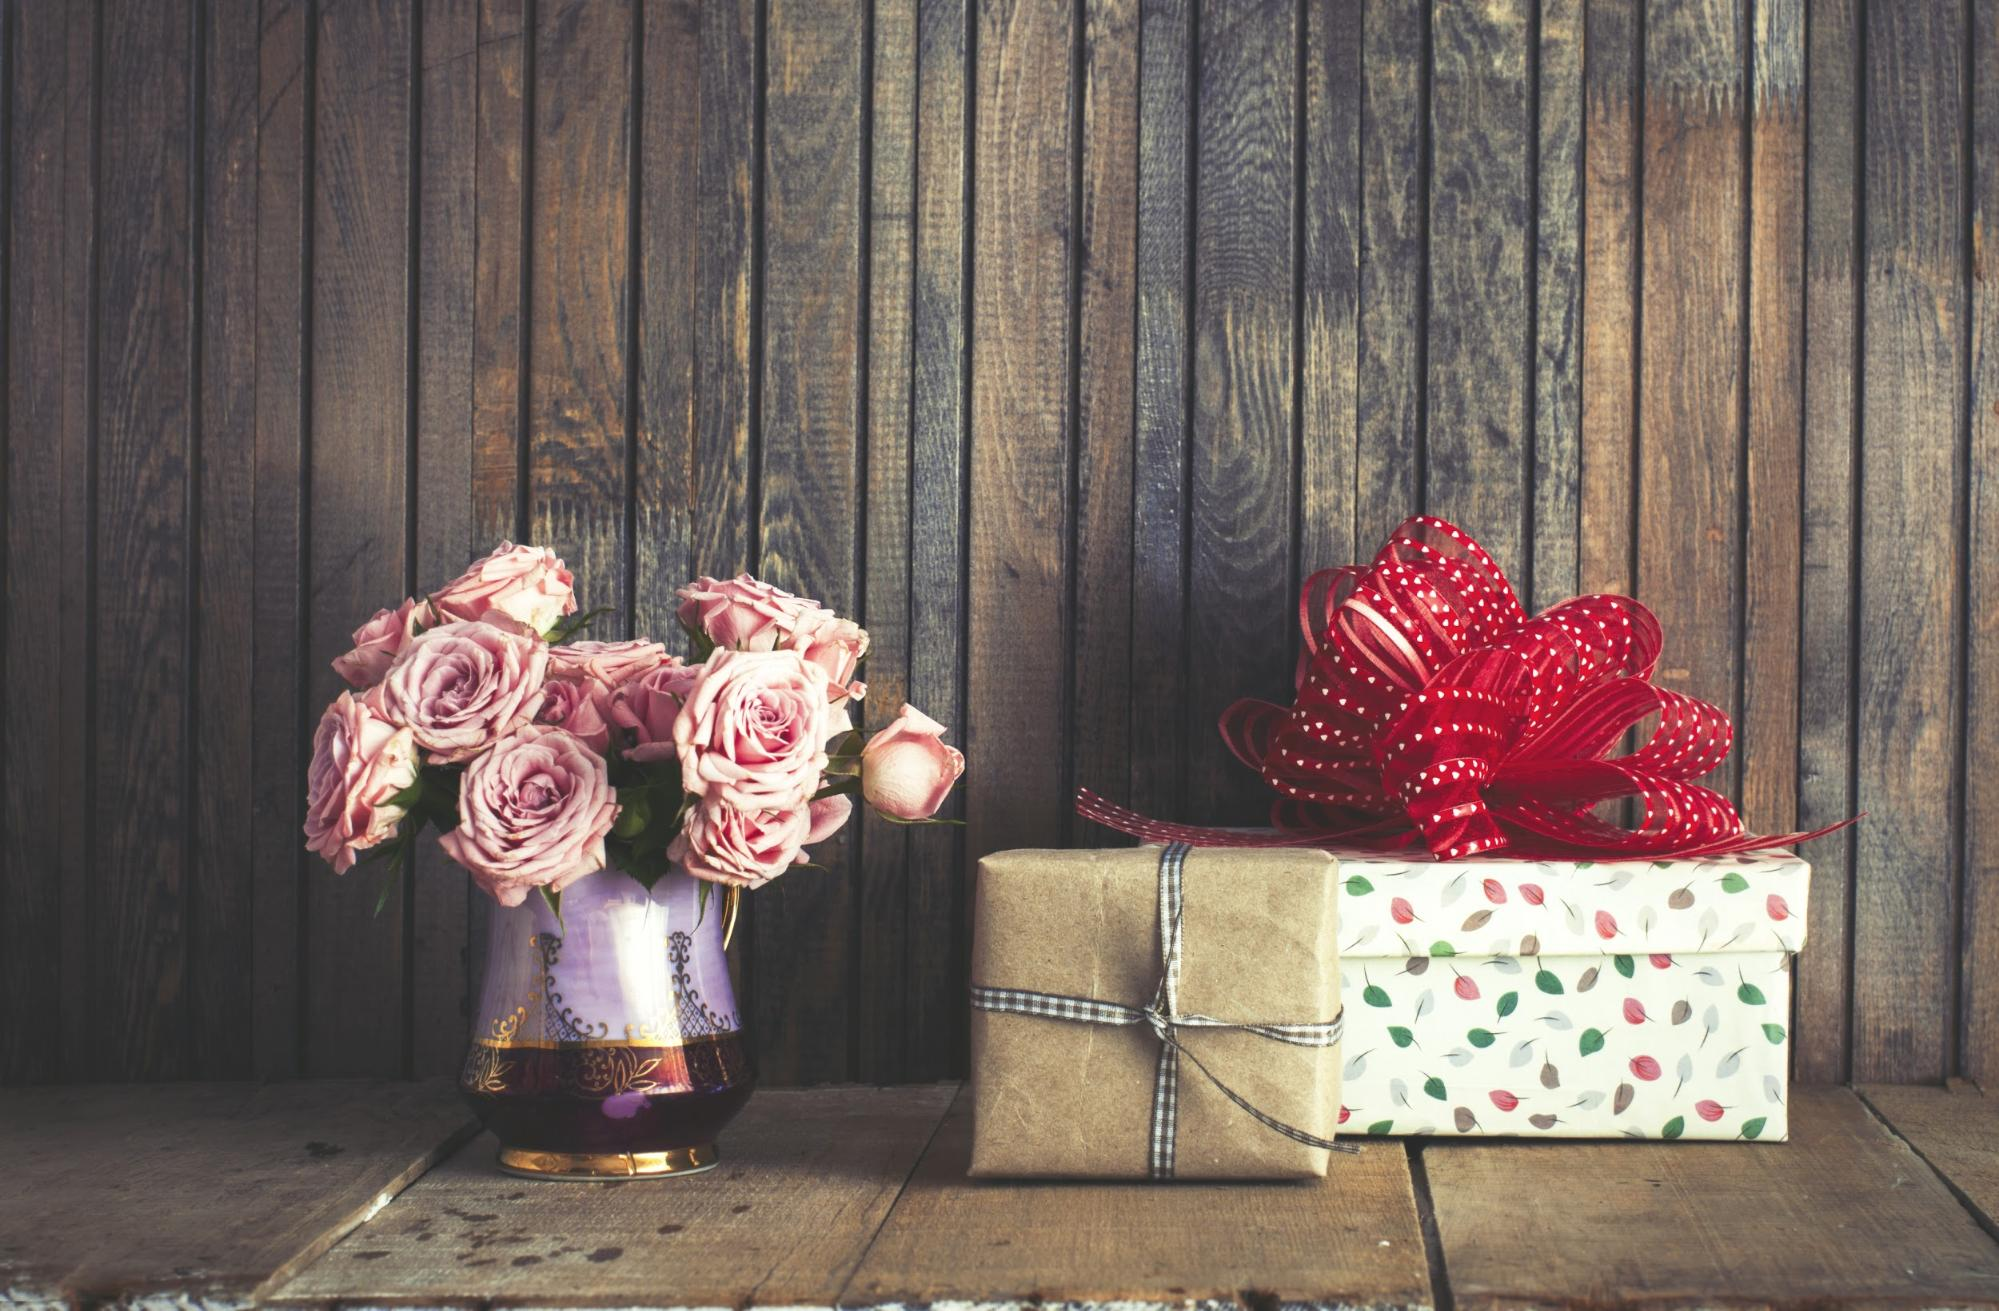 Top 5 Tips and Tricks for Setting Up Your Wedding Gift Table